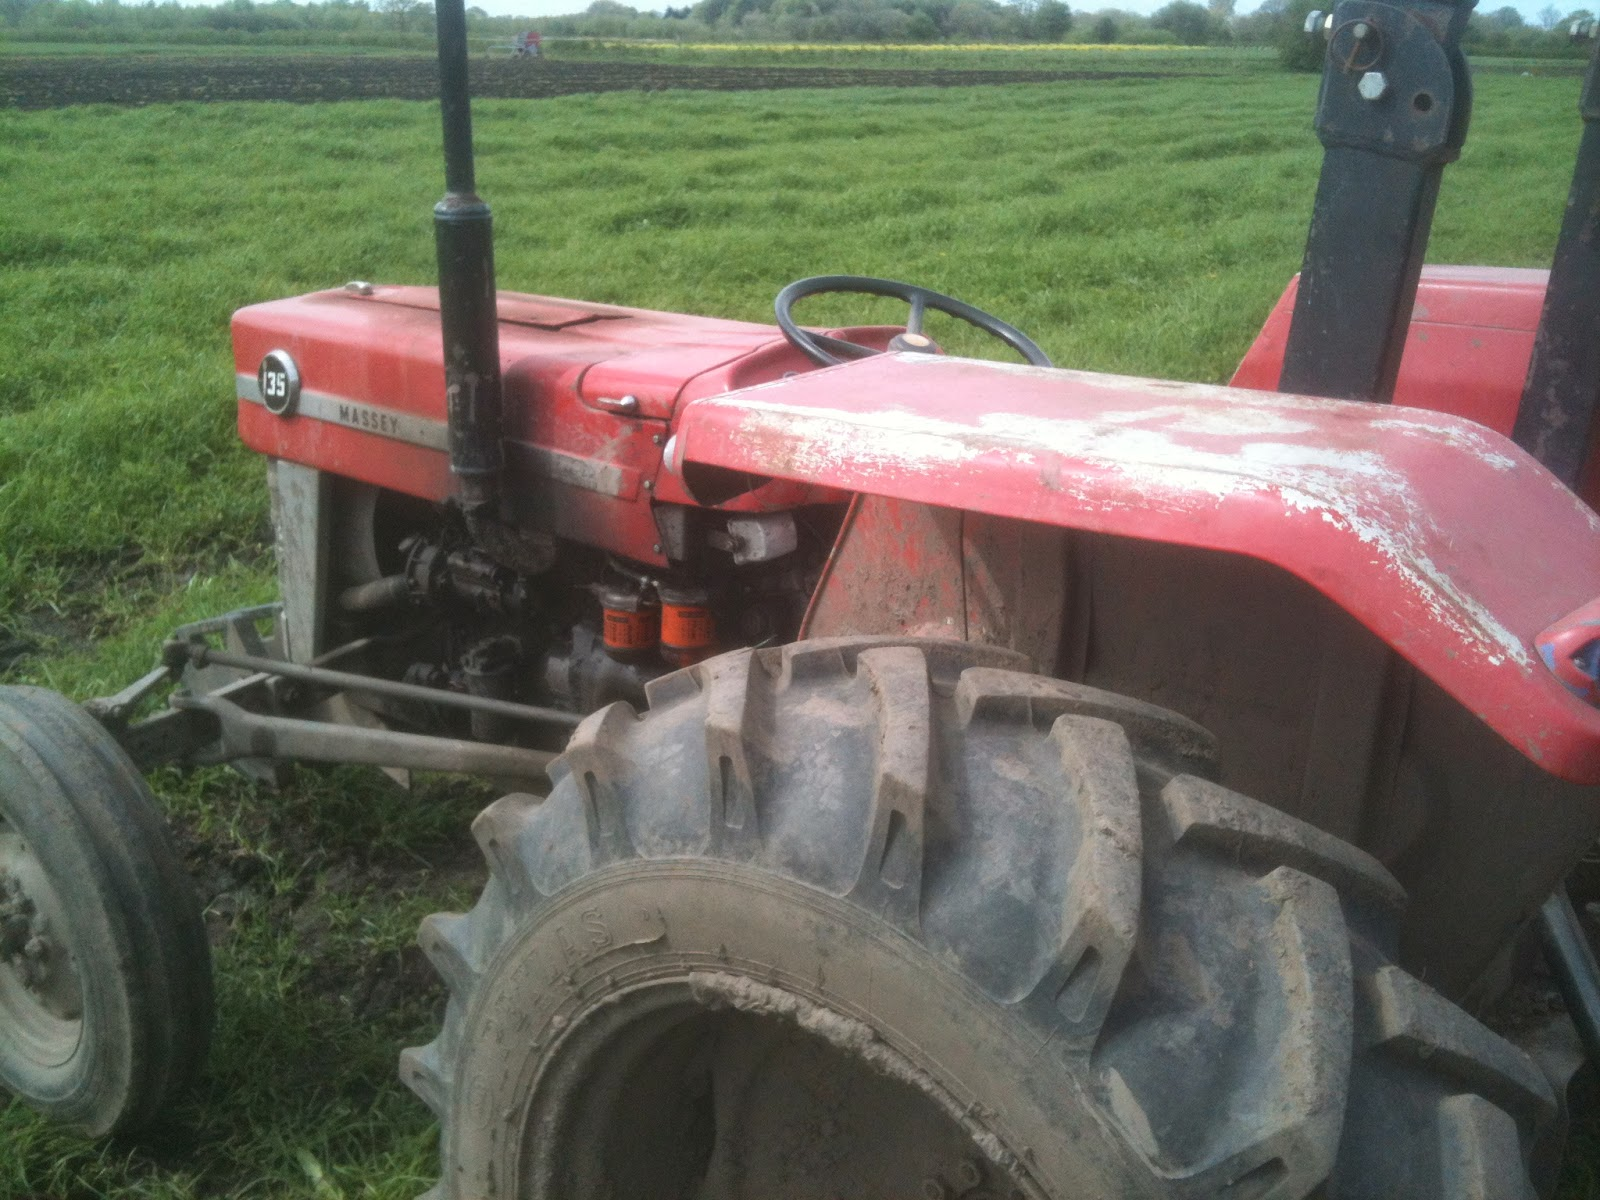 How to drive a tractor